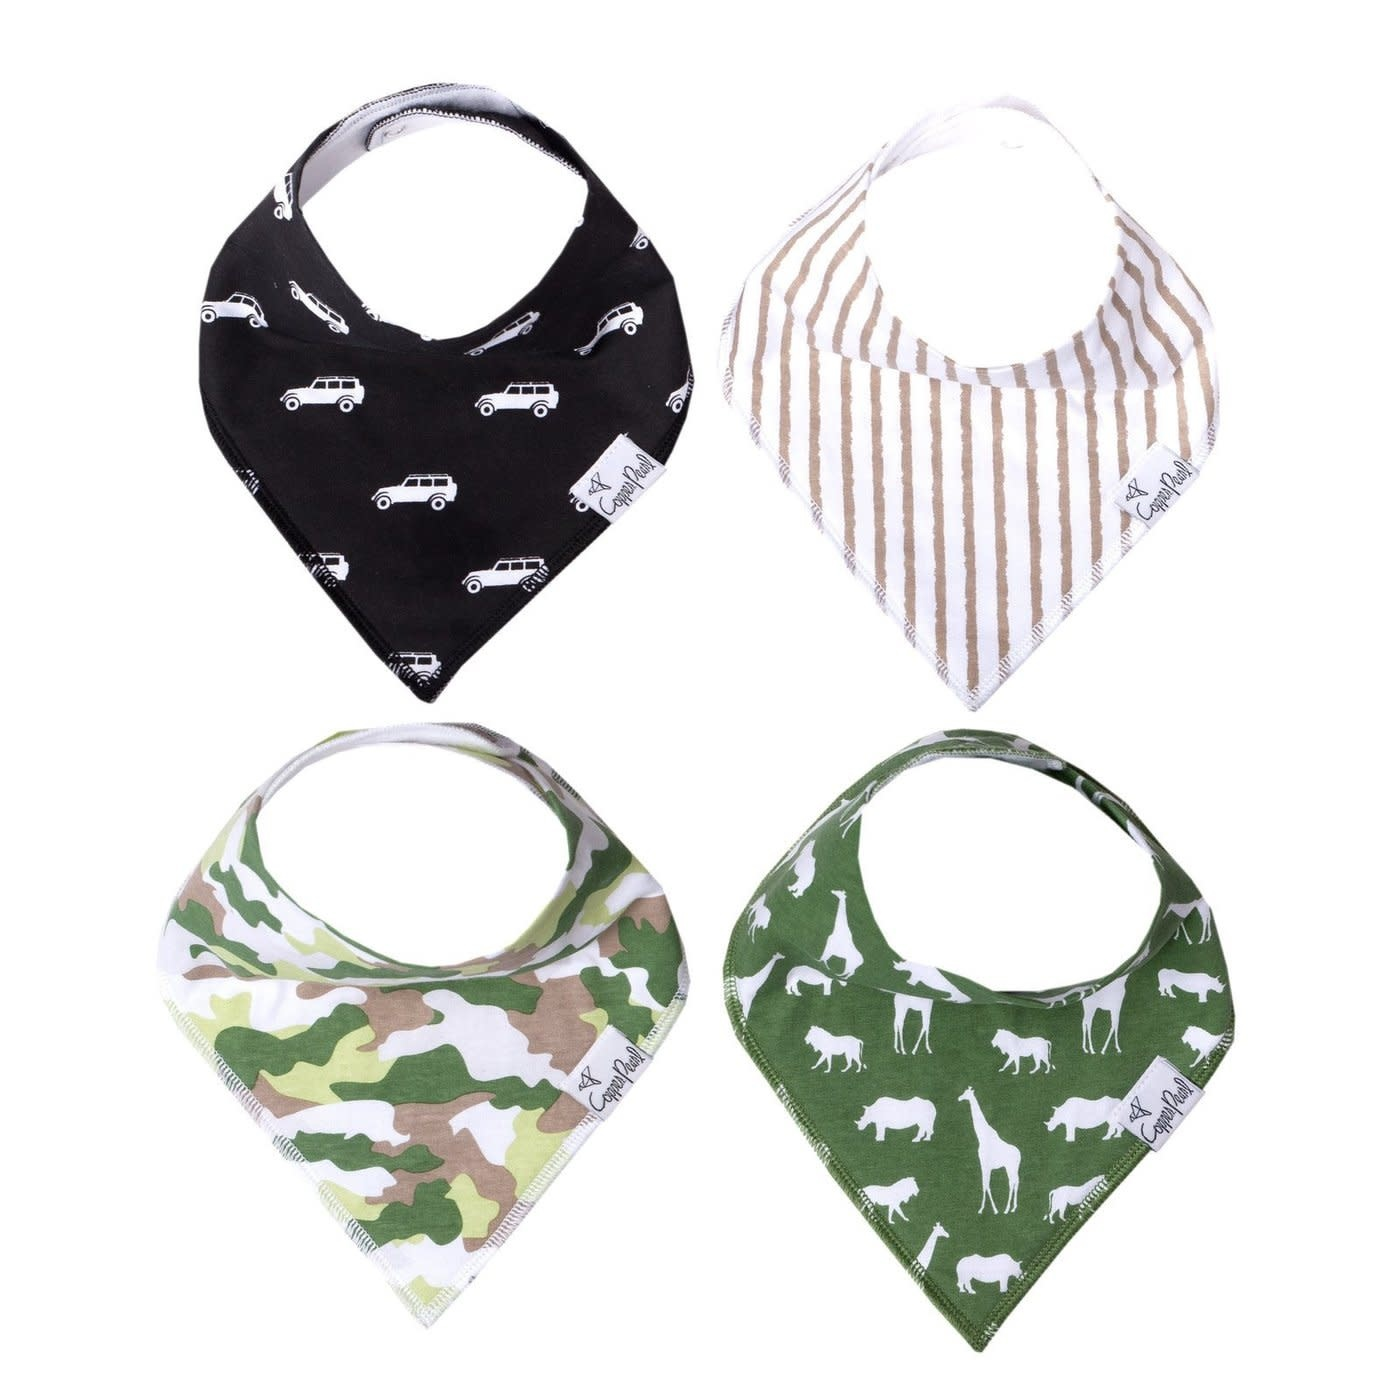 Copper Pearl Bibs - Safari Set - 4 pack